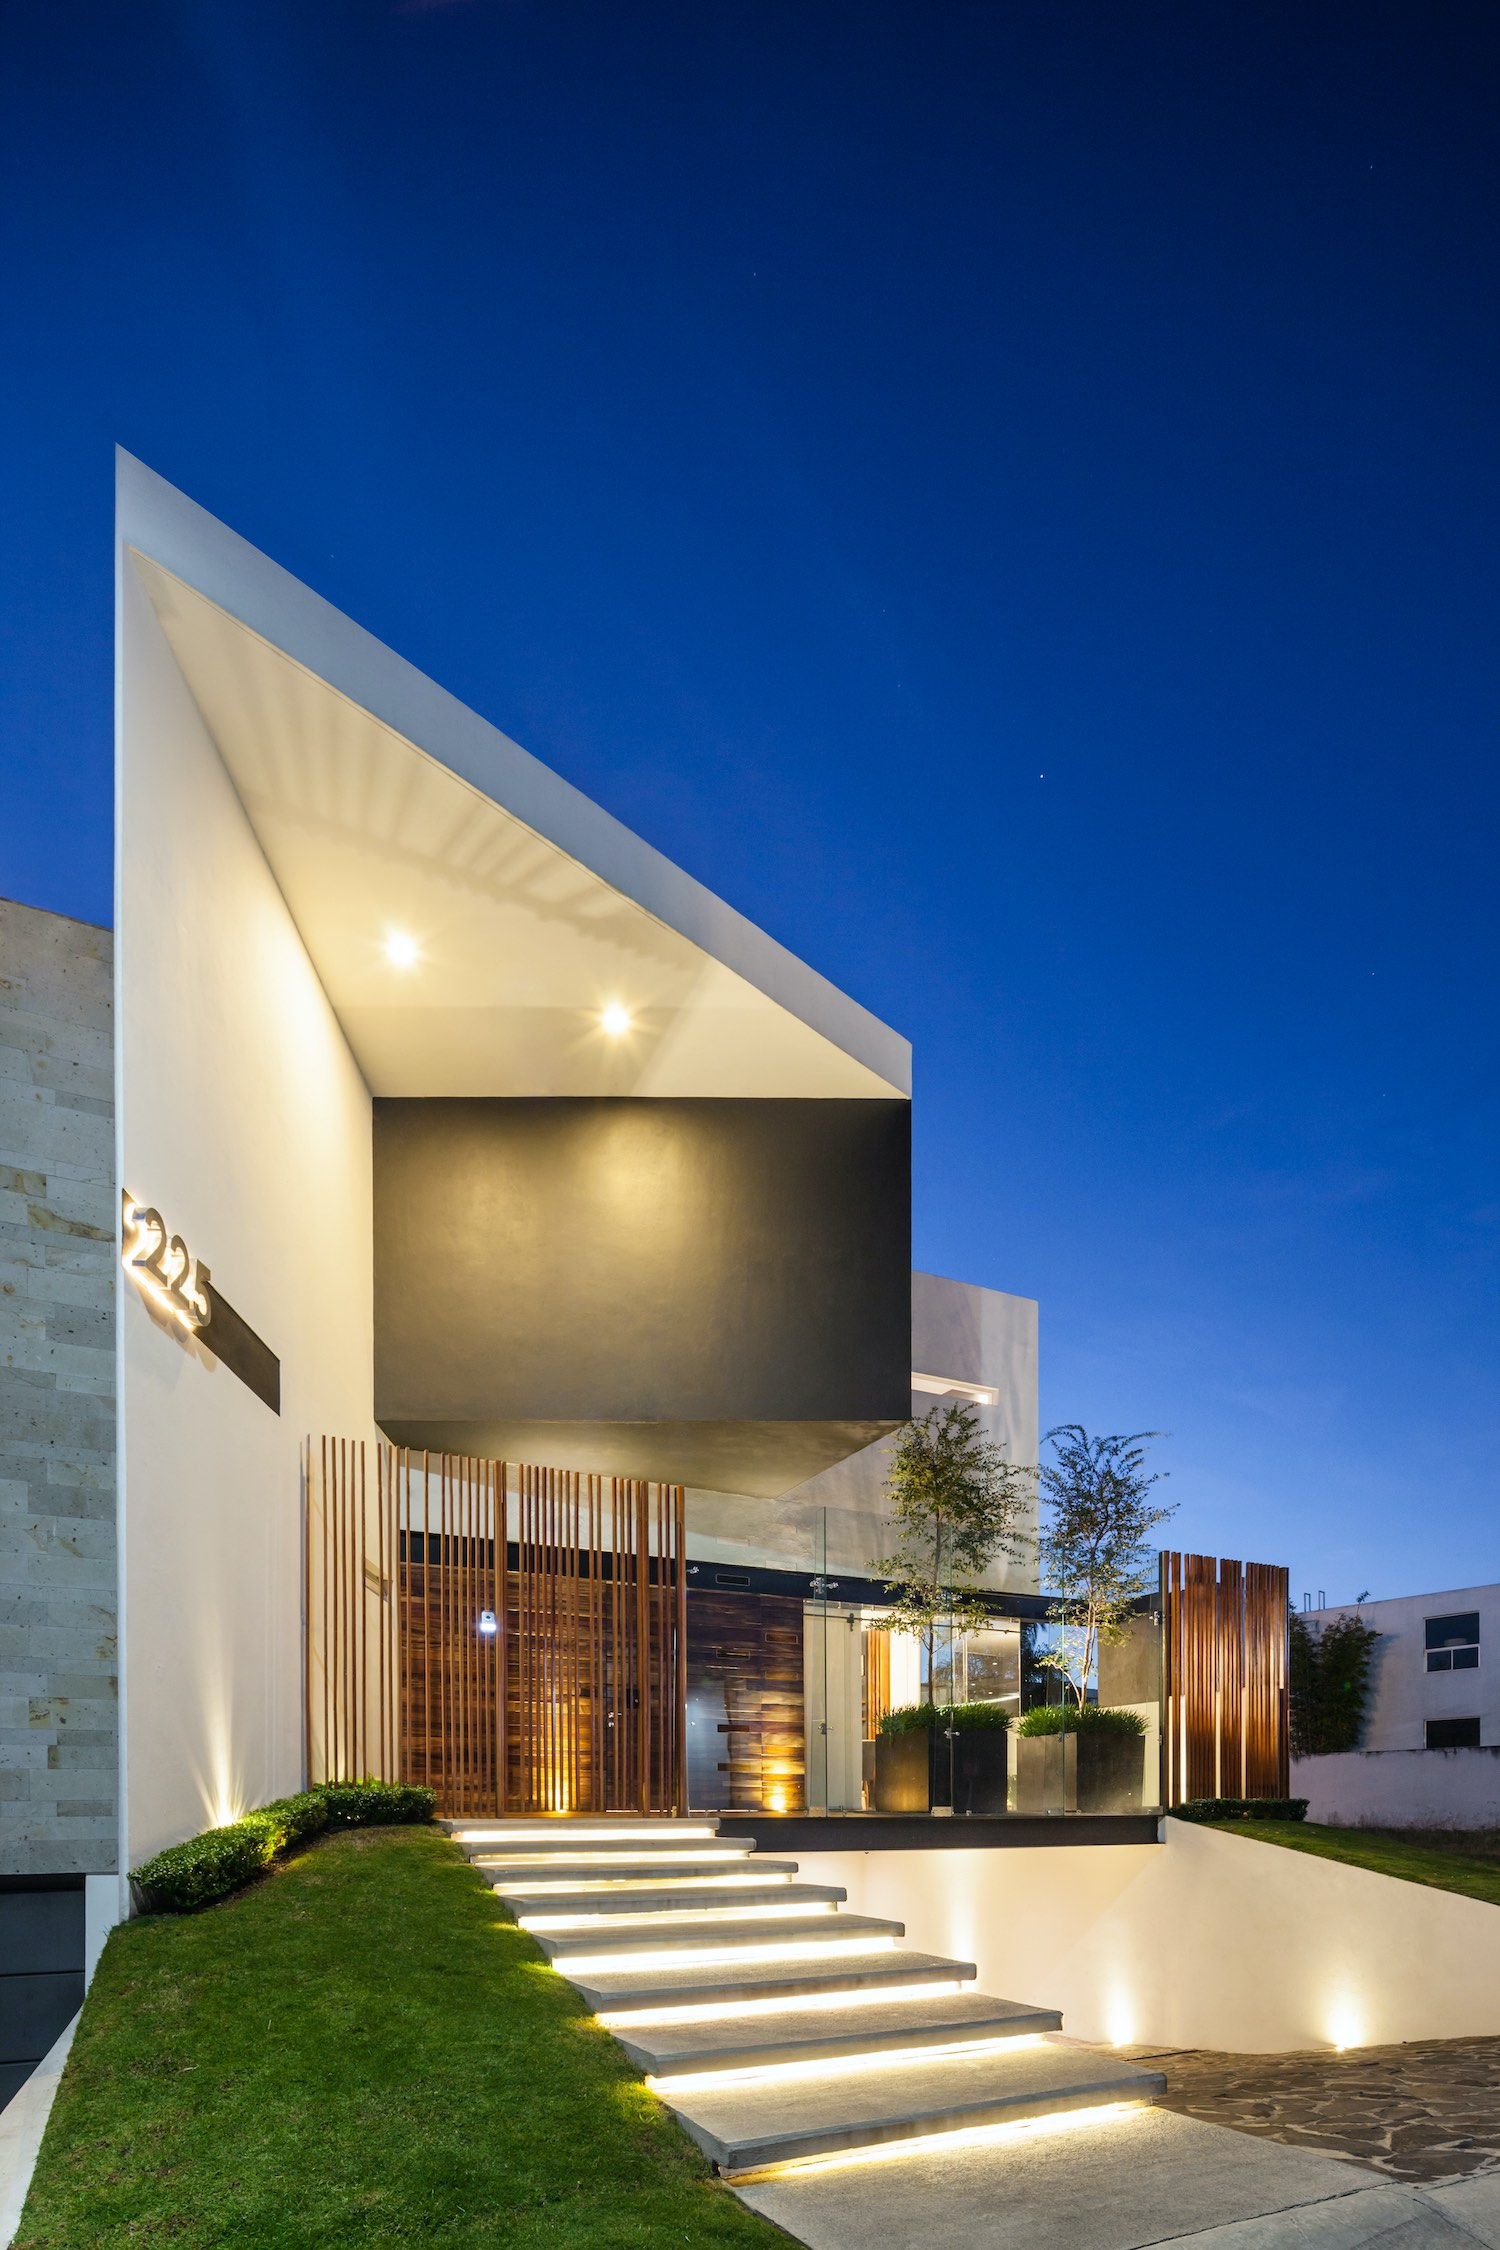 house illuminated with artificial lights at night